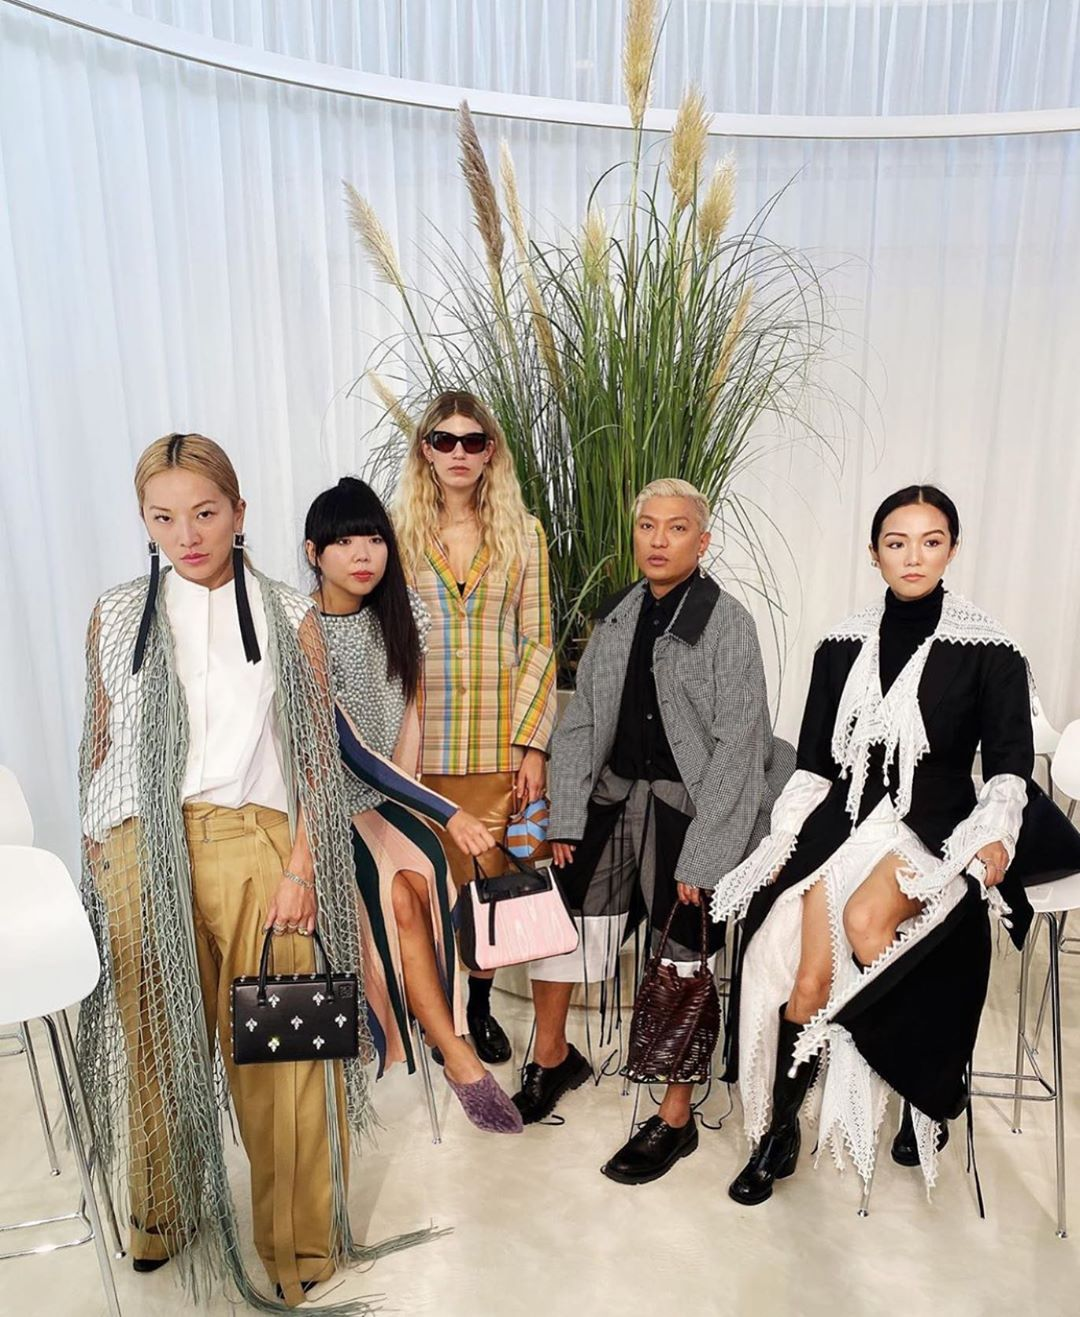 loewe-spring-2020-runway-show-influencers-front-row